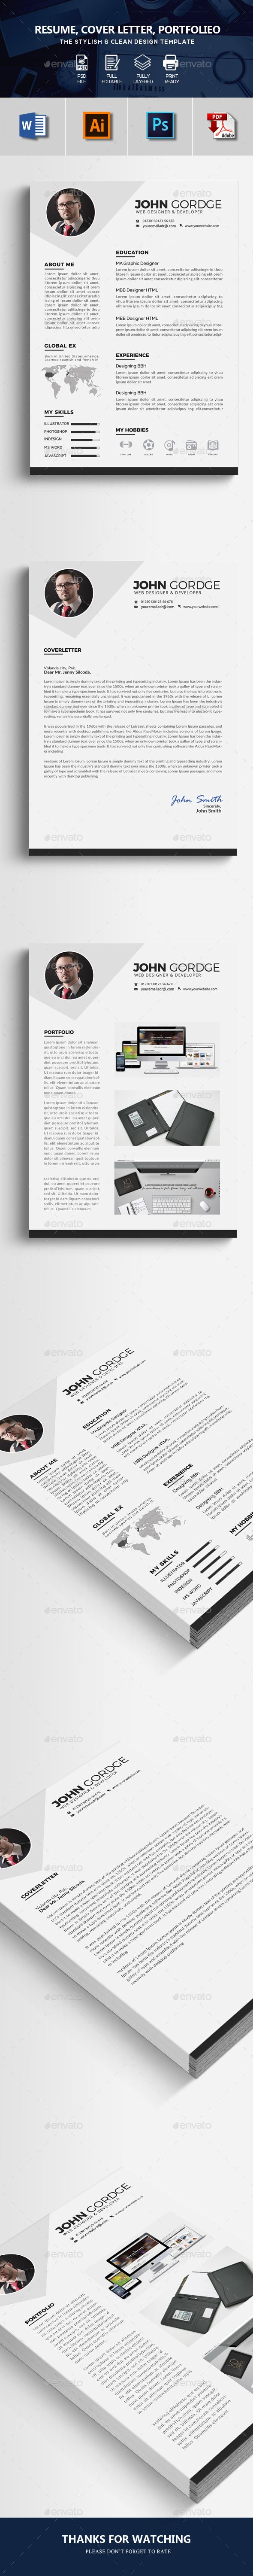 CV Resume #design #icon  • Download here → https://graphicriver.net/item/cv-resume/20538897?ref=pxcr